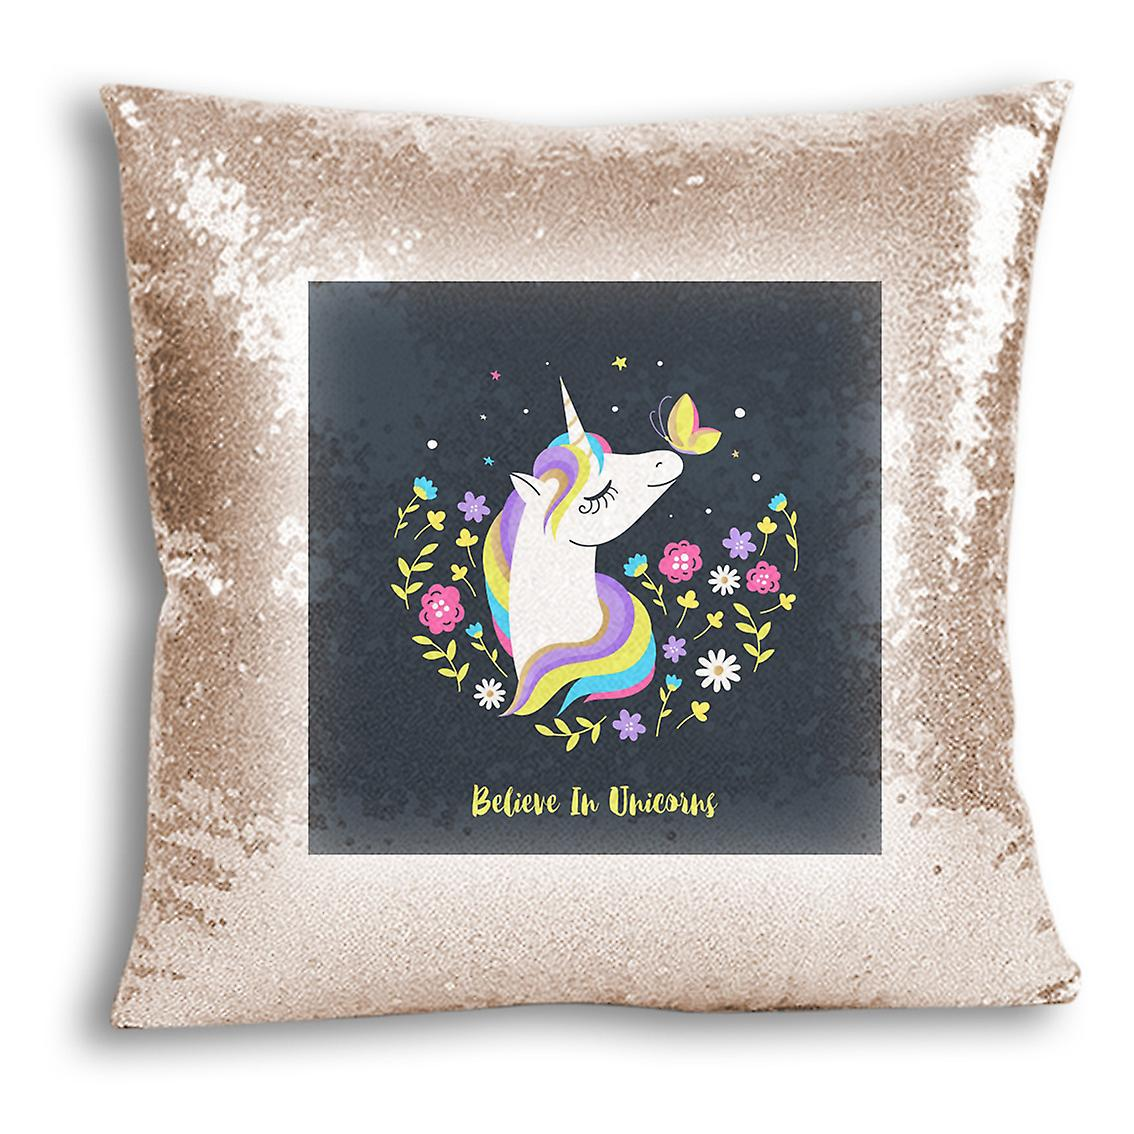 Home 14 CushionPillow With Cover Decor Design Printed I tronixsUnicorn Champagne Inserted Sequin For XkOPZuiT